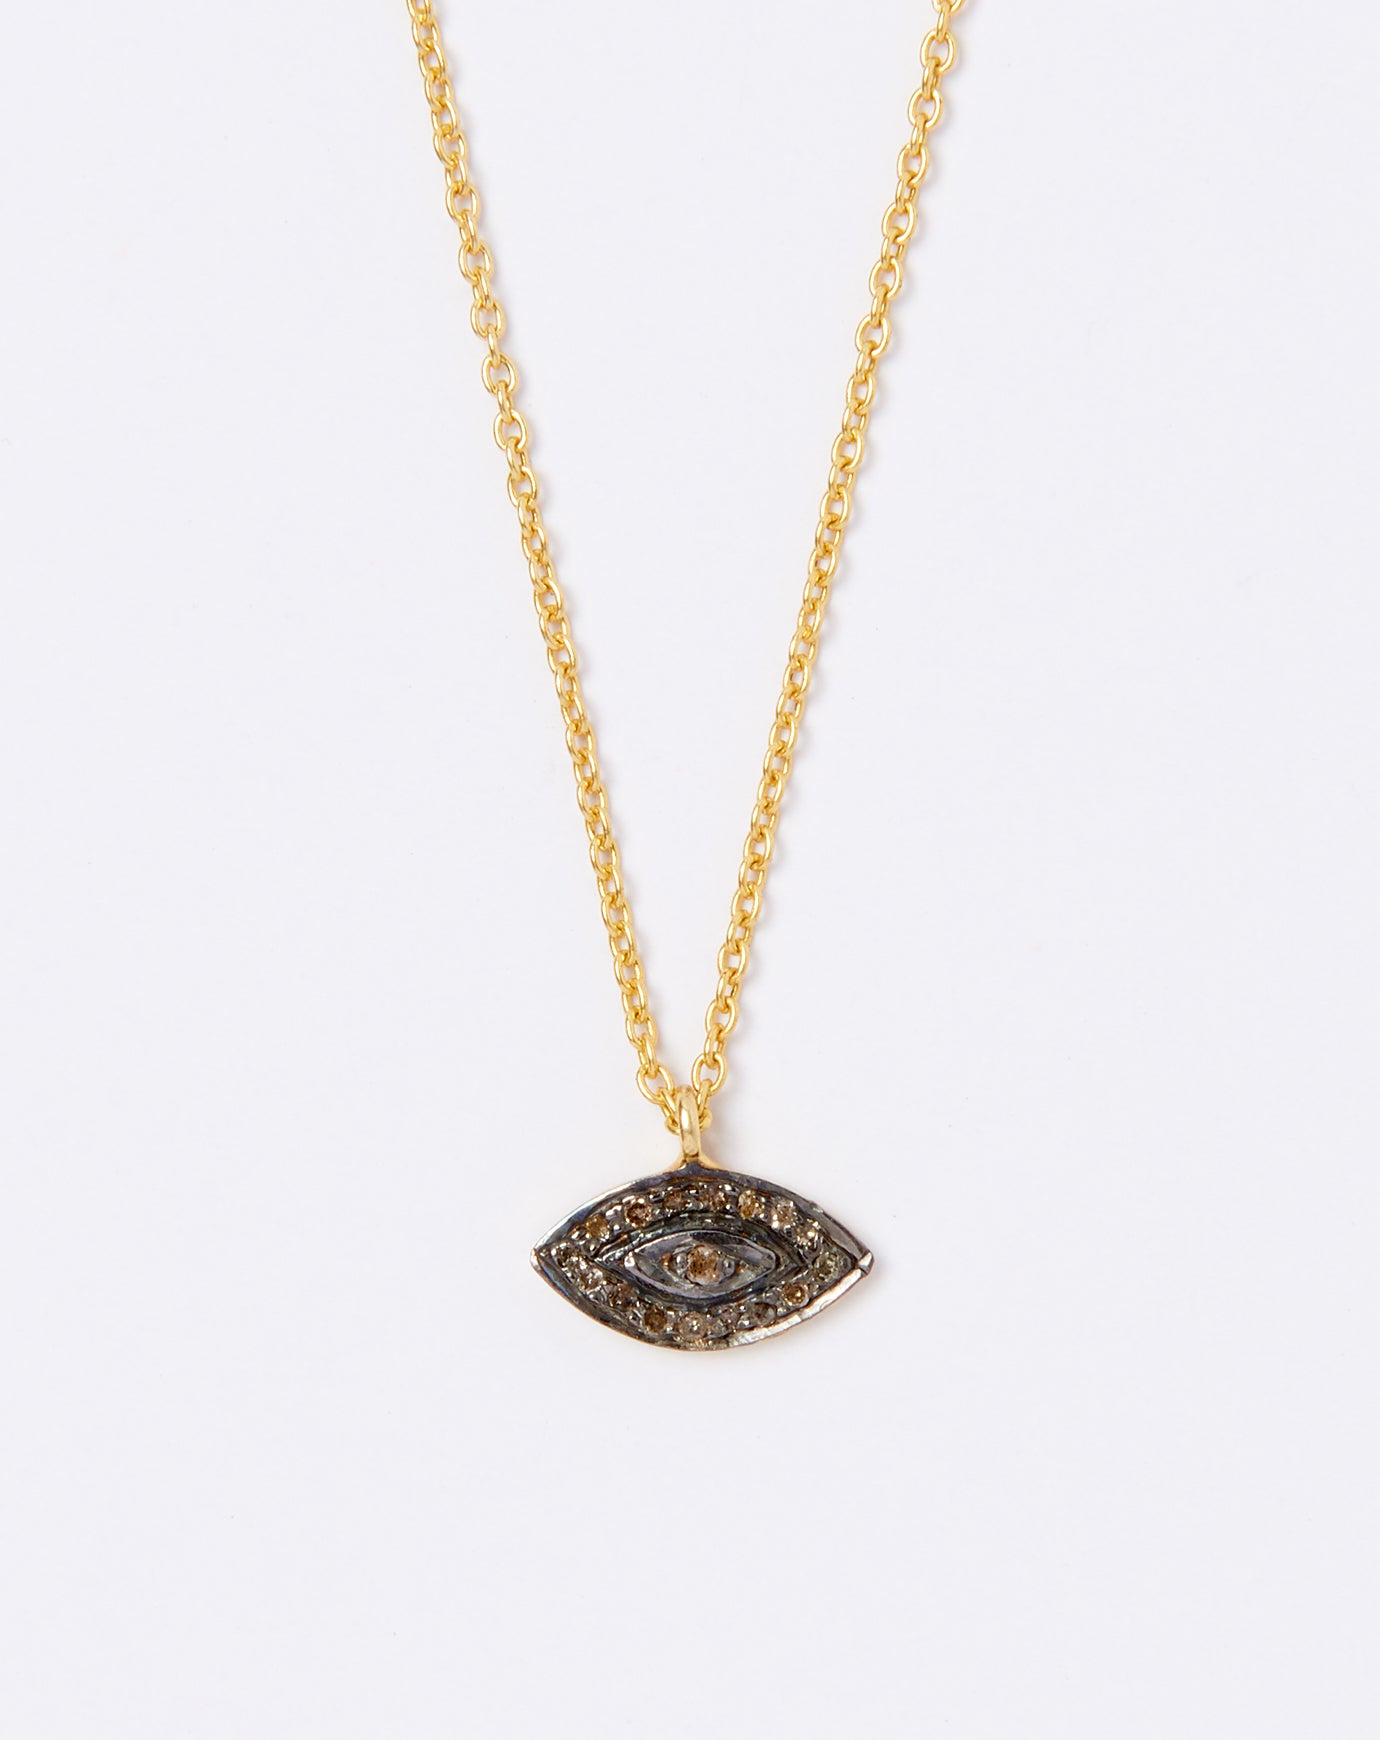 necklace evil gold sapphire turquoise diamond white pendant yrpz and eye